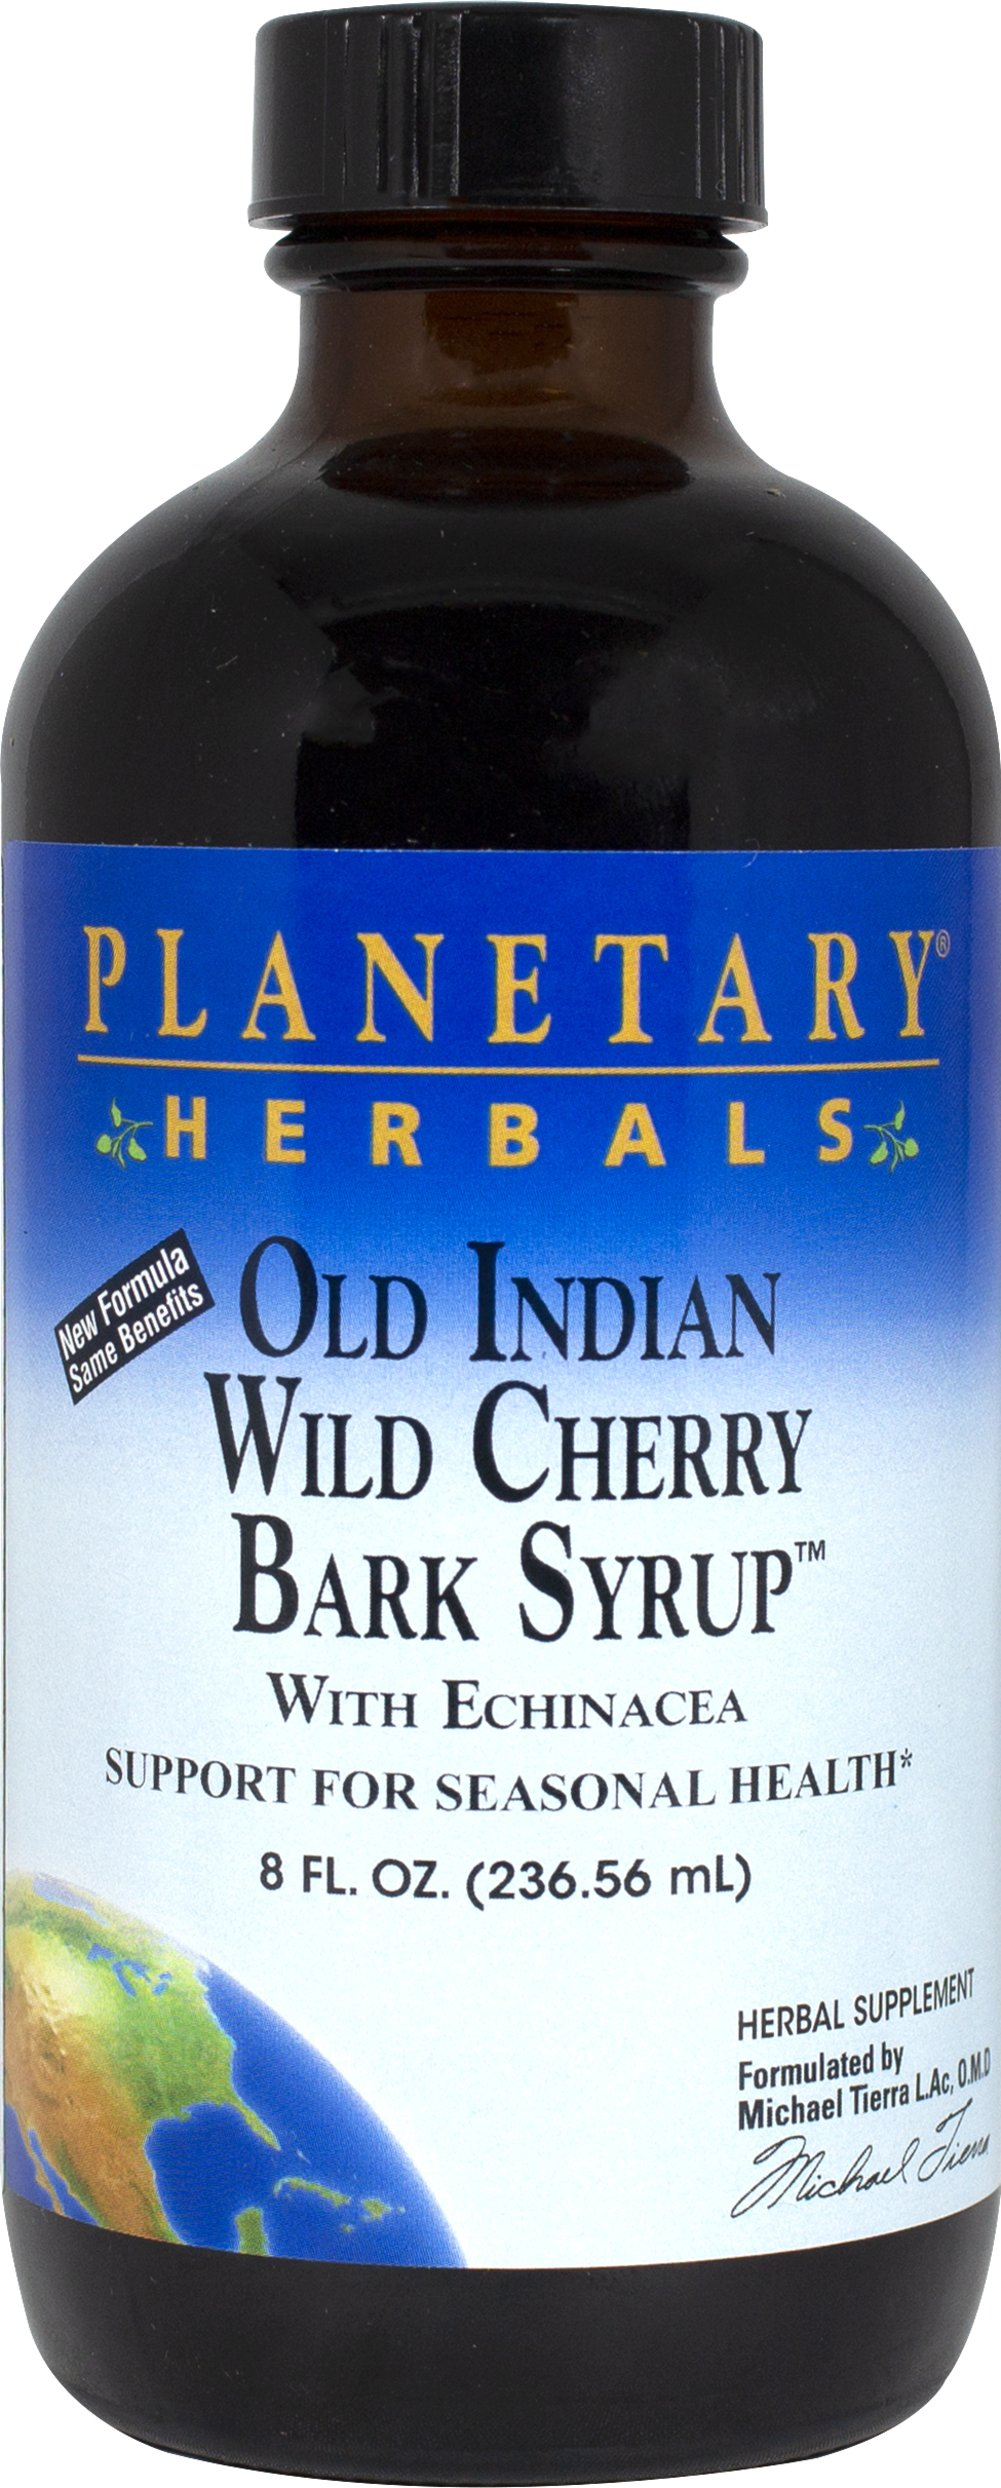 Old Indian Wild Cherry Bark Syrup  8 fl. oz. Liquid  $10.53